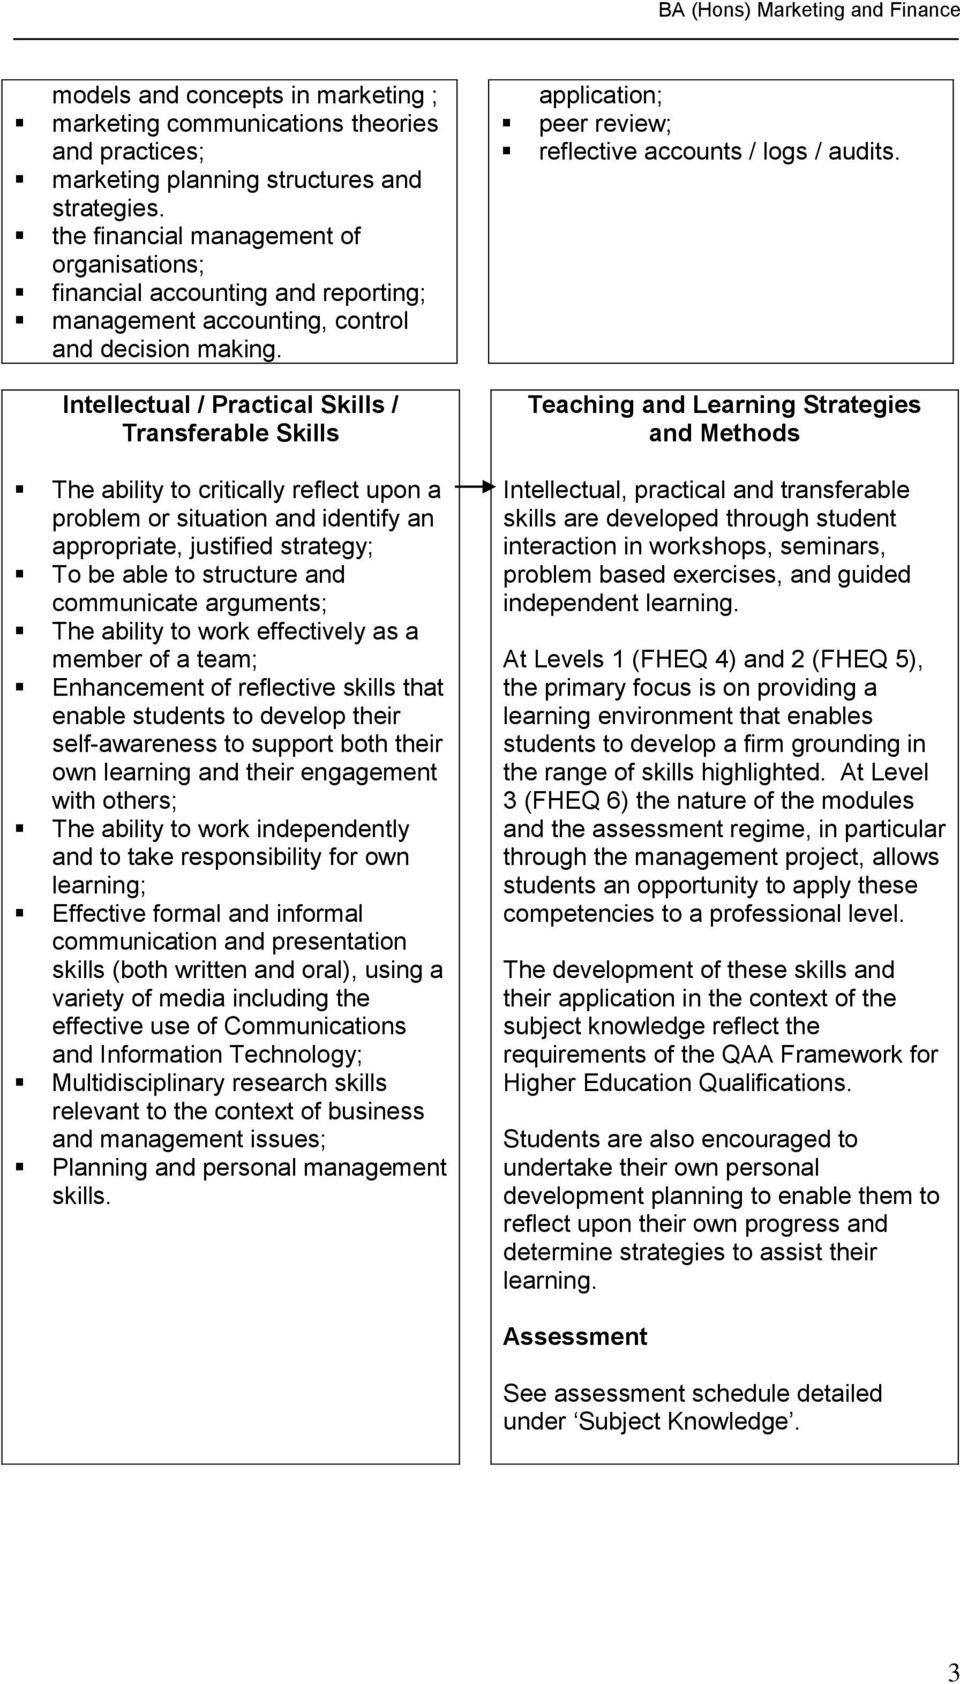 Intellectual / Practical Skills / Transferable Skills The ability to critically reflect upon a problem or situation and identify an appropriate, justified strategy; To be able to structure and